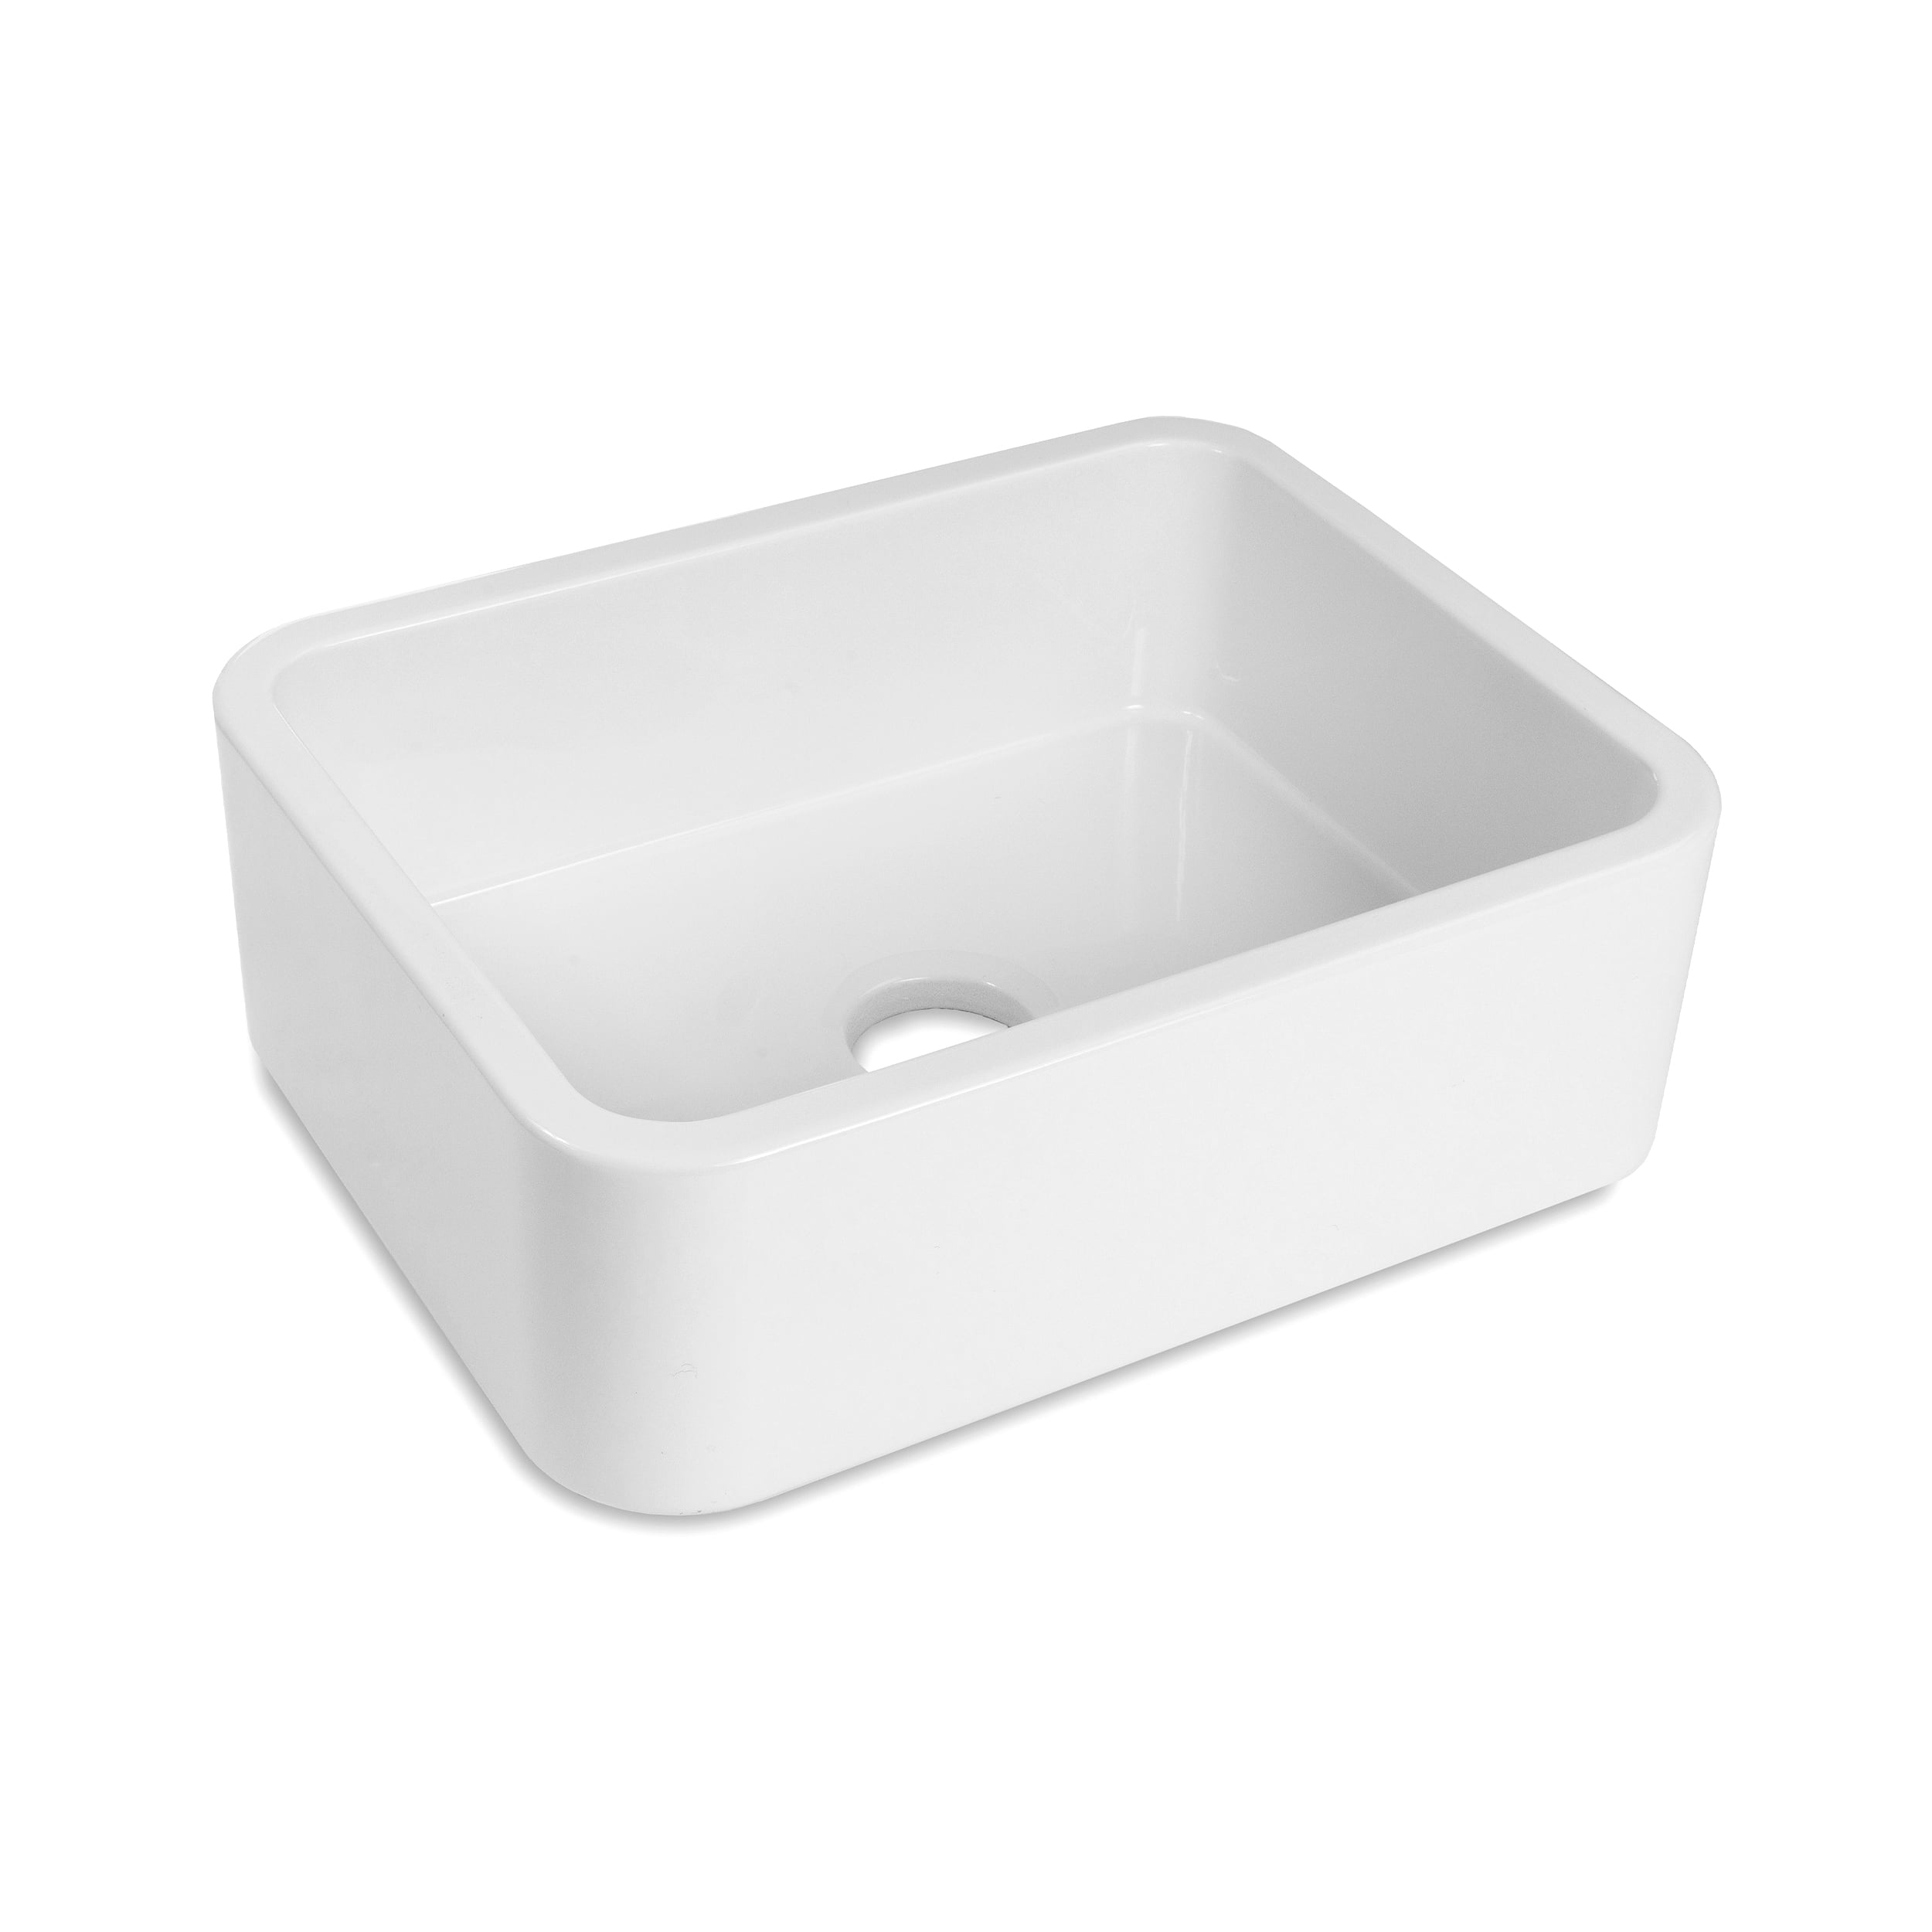 Front of the Barrow, a single bowl sink with rounded edges.